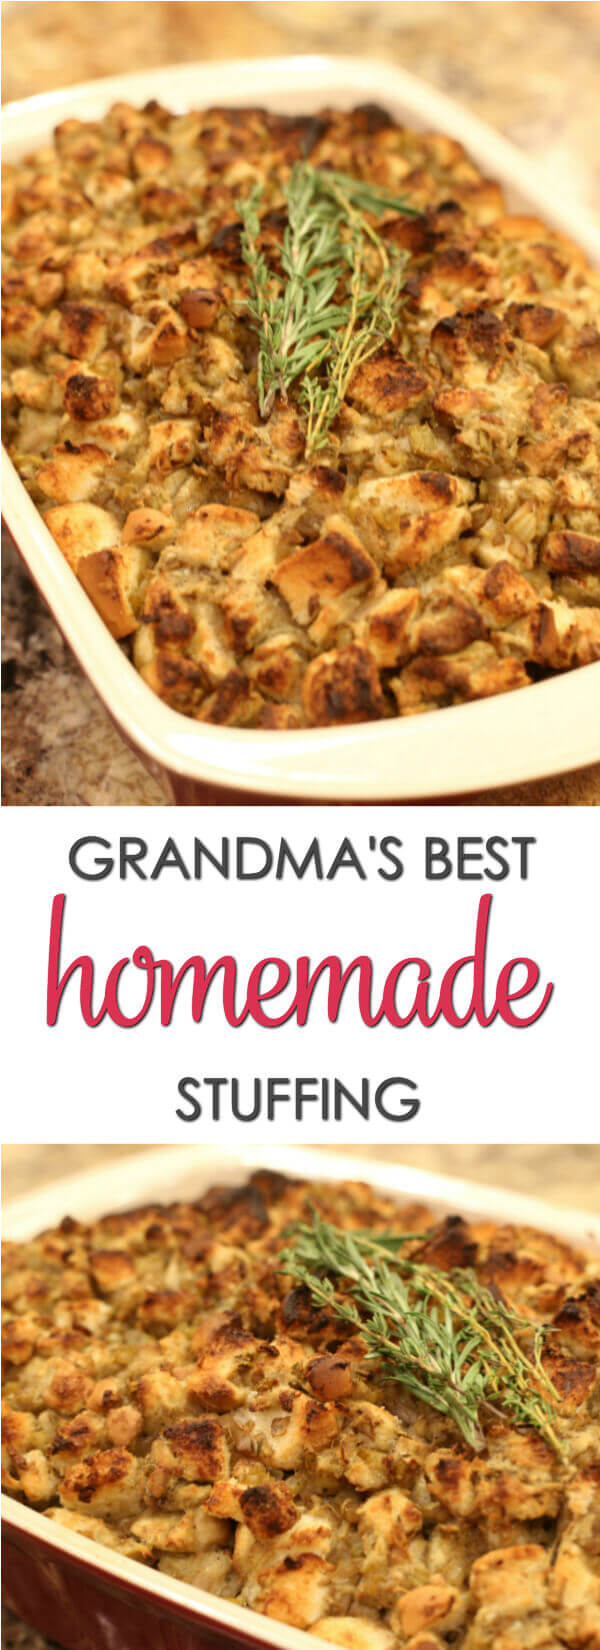 Grandma's Thanksgiving Stuffing is an easy turkey stuffing recipe that is always on our holiday menu.It's definitely one of the best Thanksgiving recipes ever.